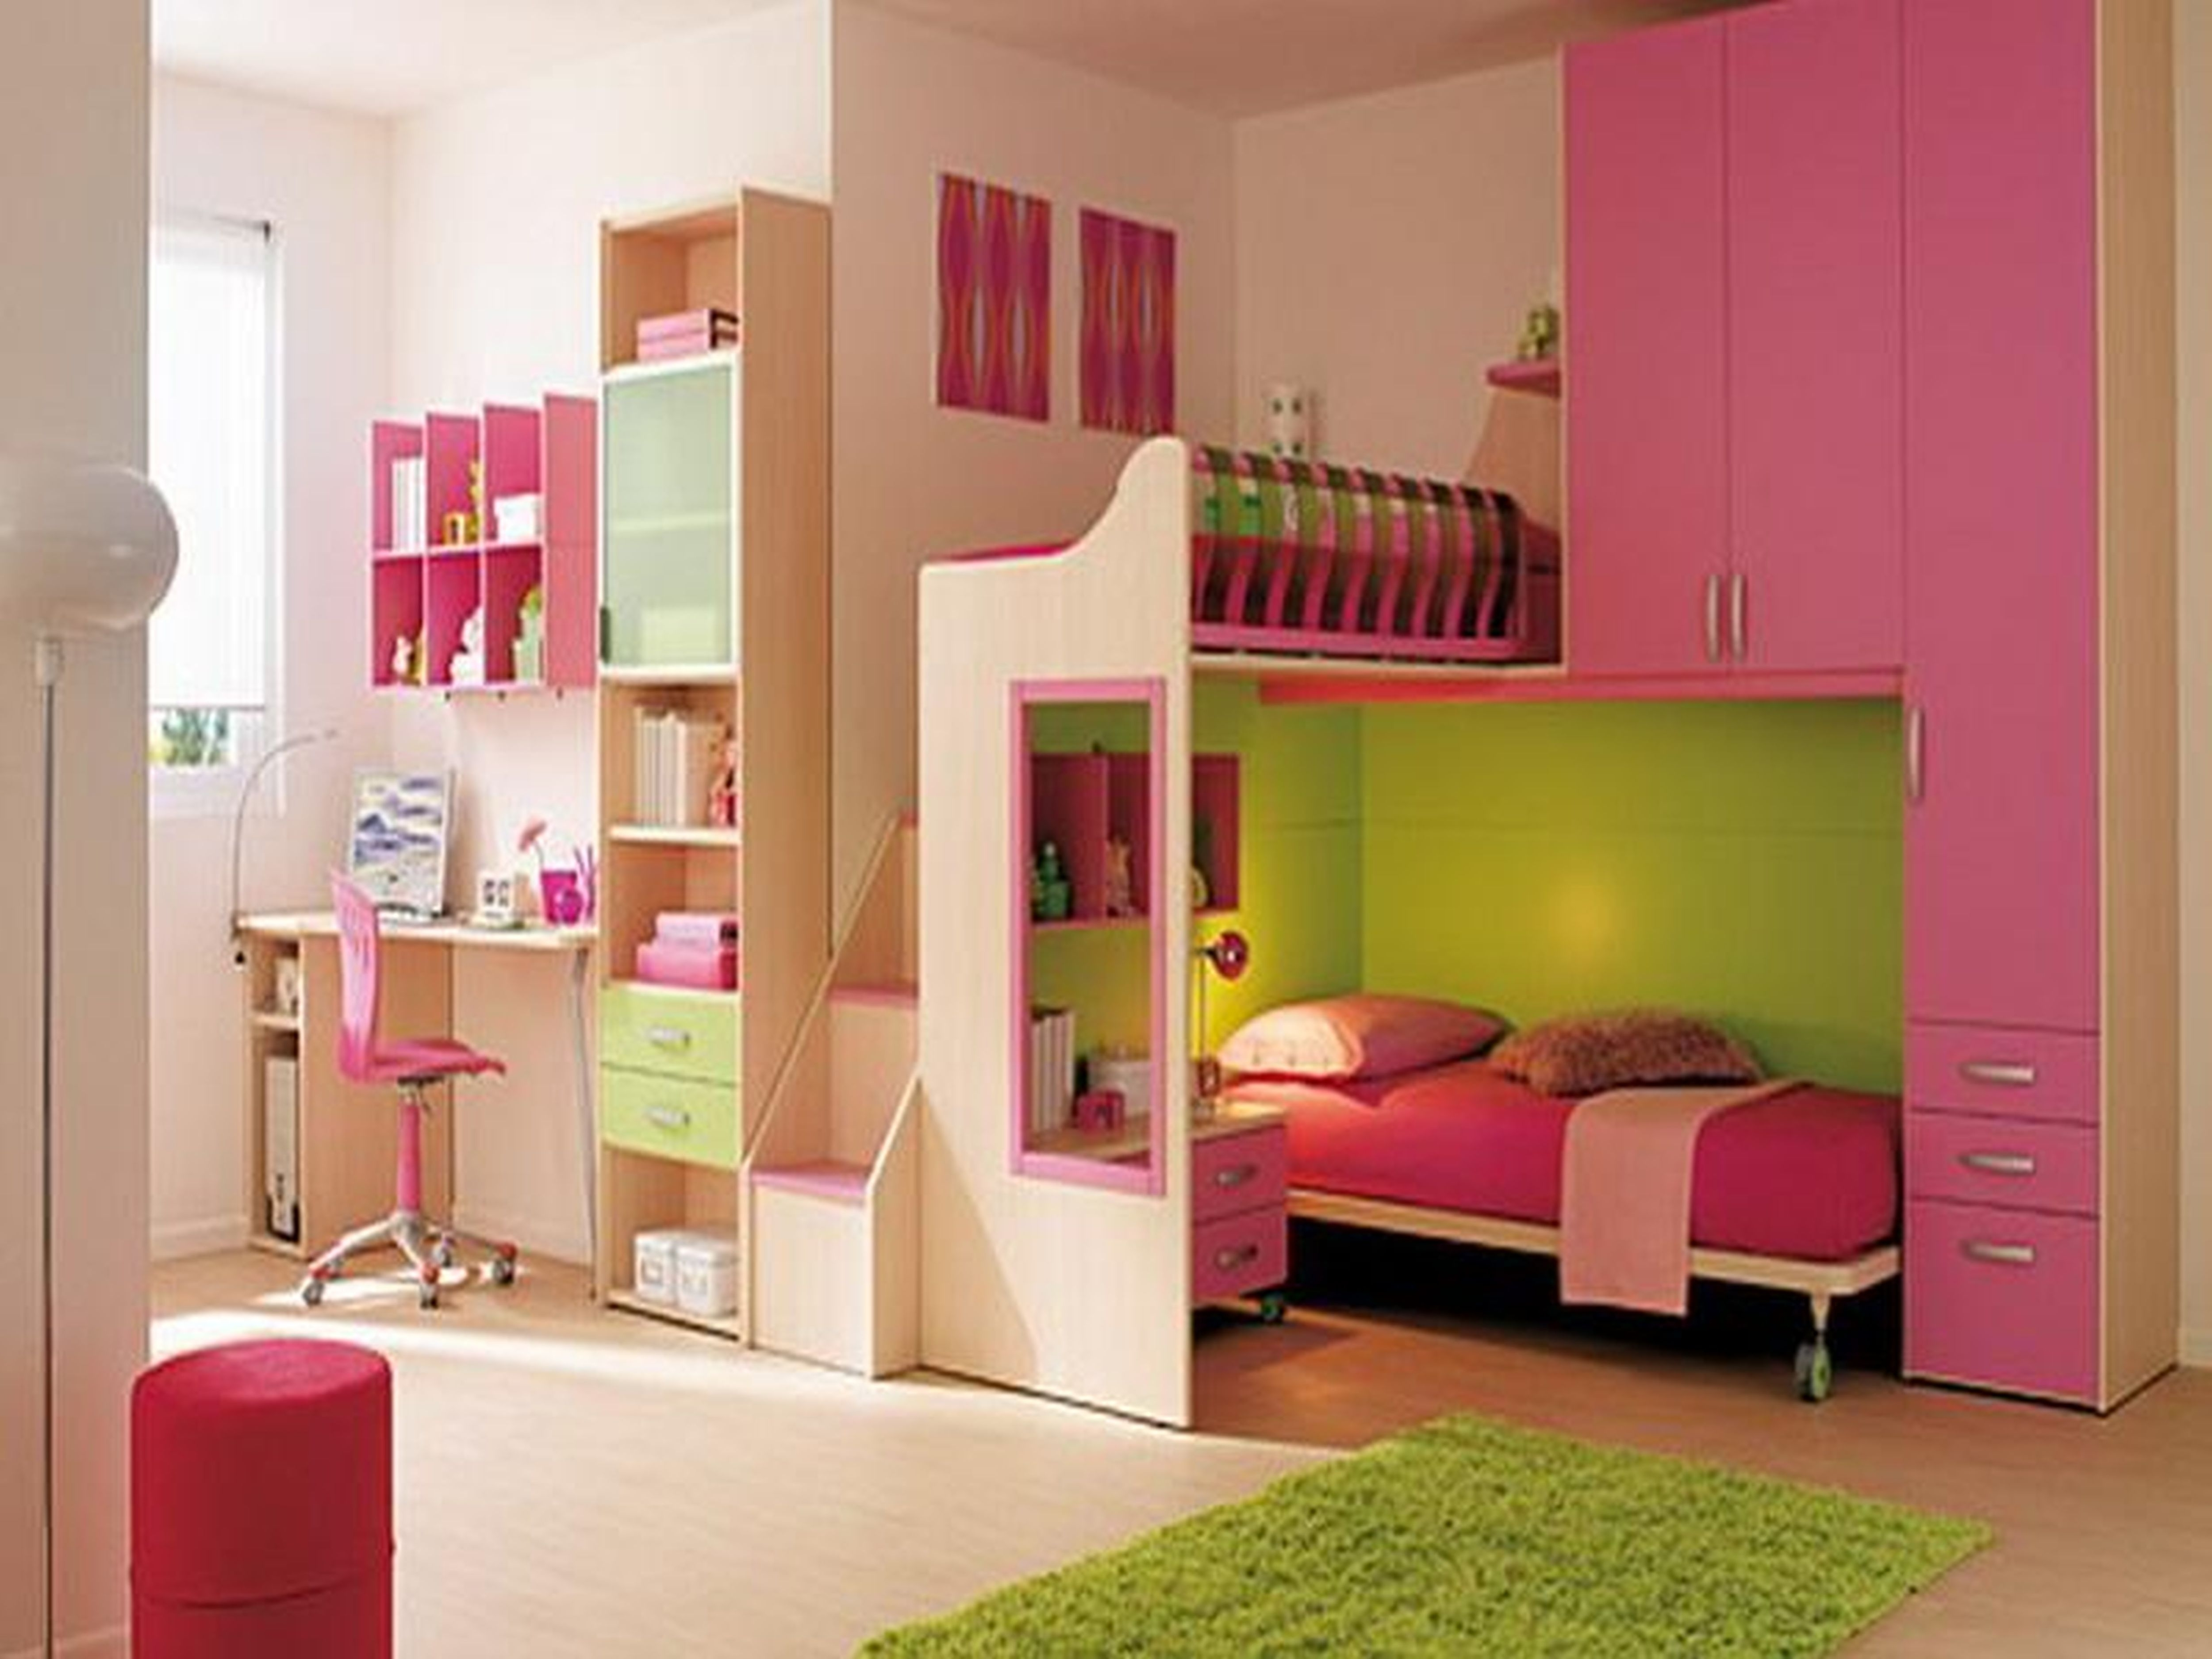 Remarkable Kid Girl Room Decorating Ideas Kids Room Home with regard to kids room ideas for girls with regard to Aspiration - Design Decor